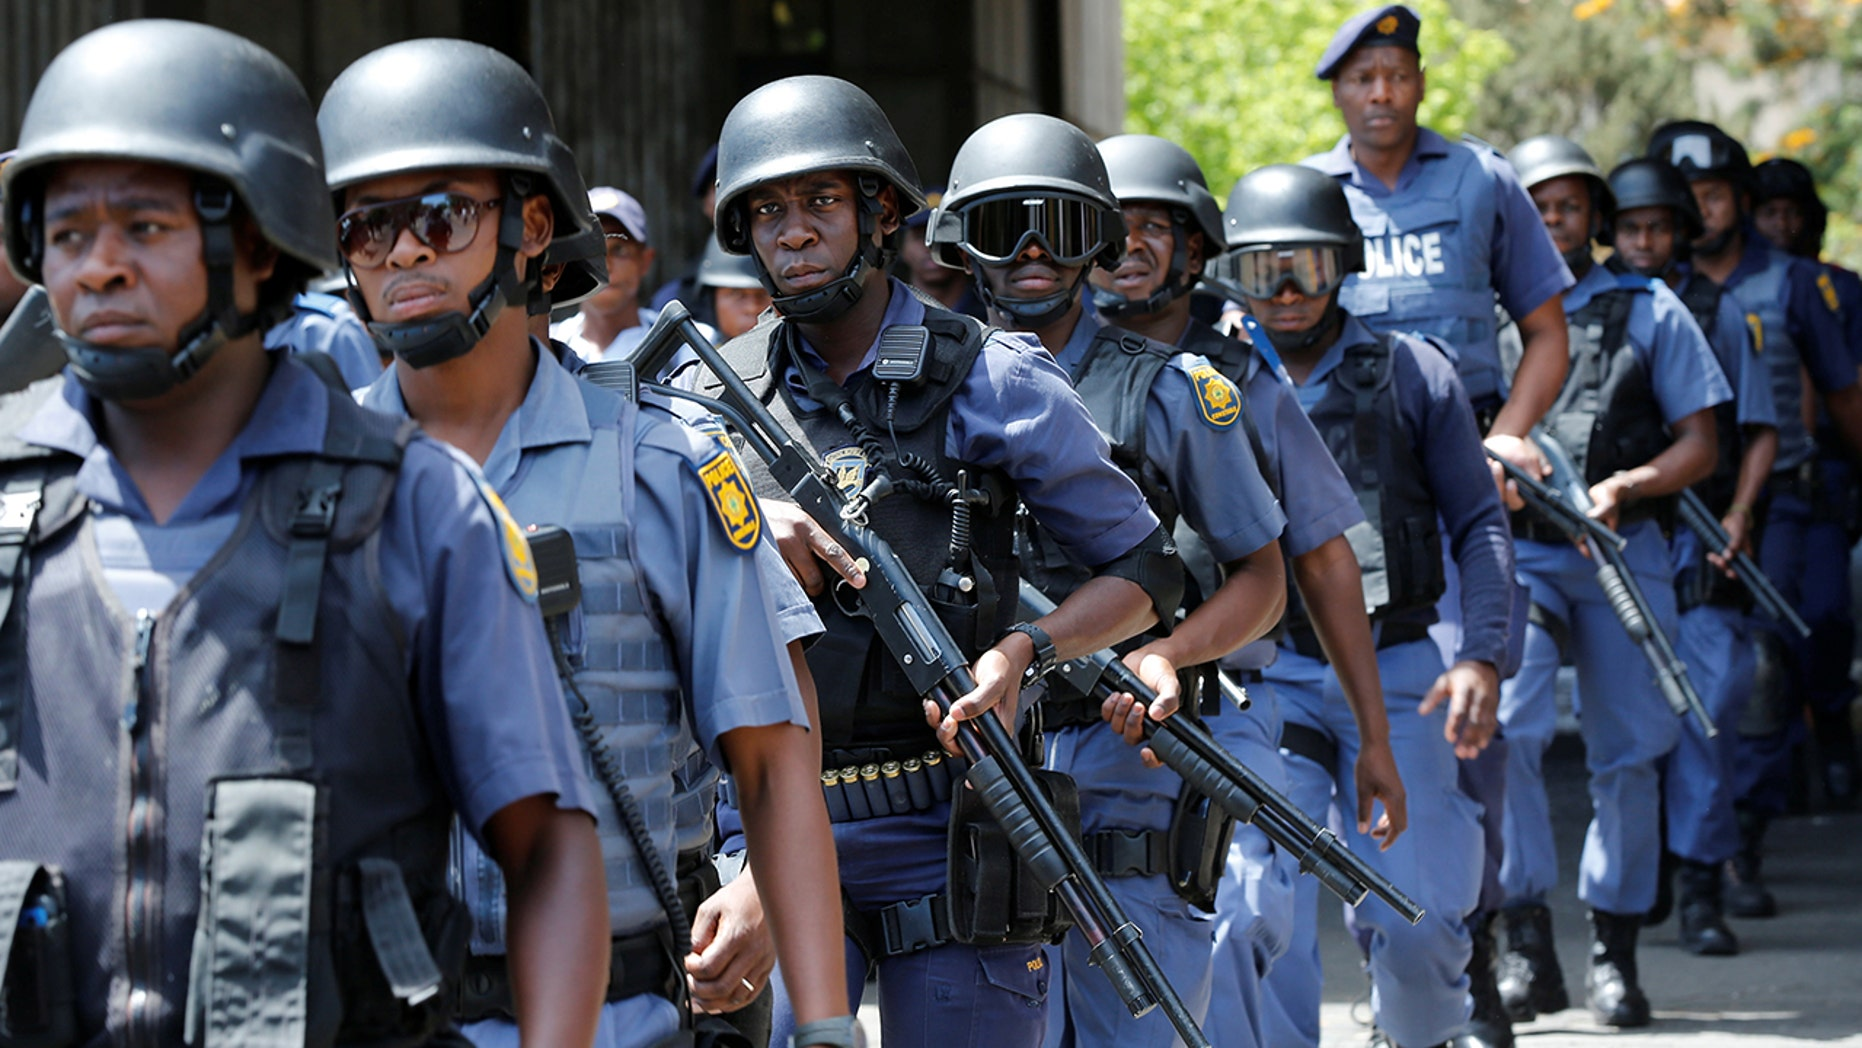 Police in South Africa are searching for a man they said had an injured penis after he was bitten by a woman he allegedly raped.